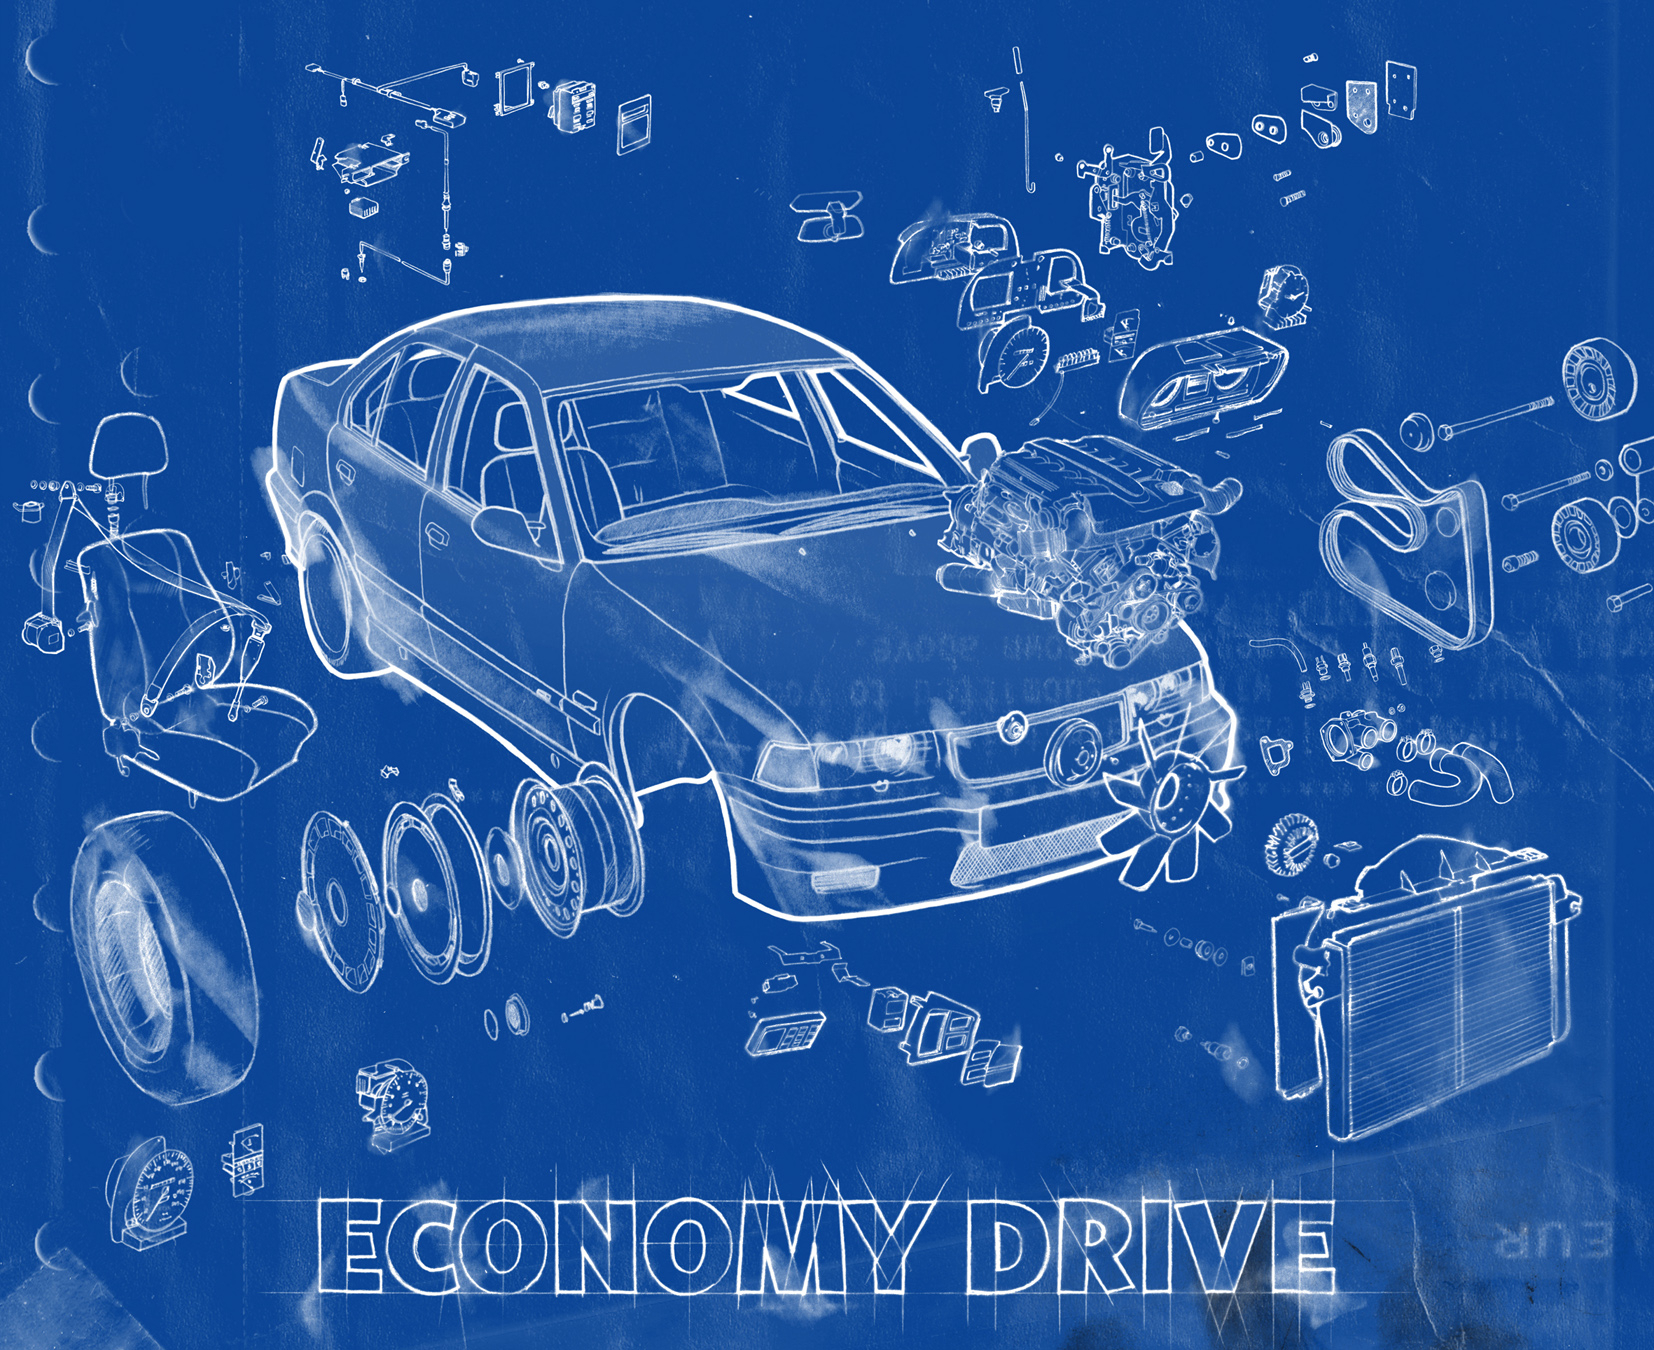 Economy Drive / Supply Management Magazine